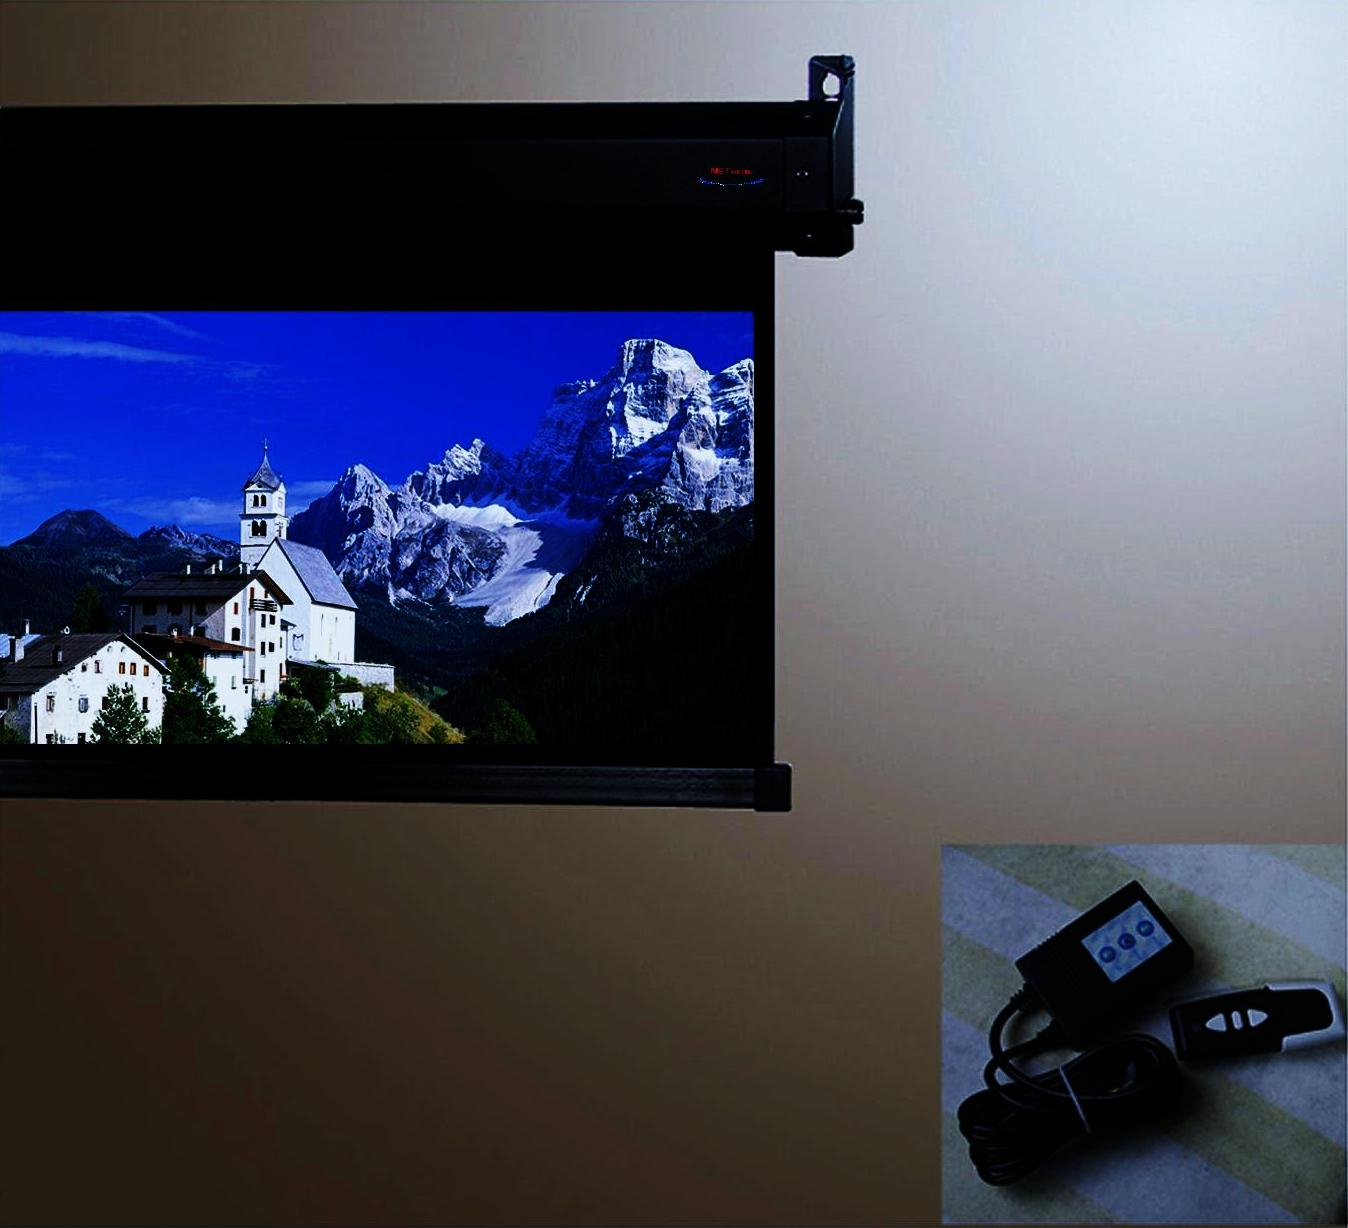 http://metechs.com/store/fta_images/projector/16X9Screen_BRemote.jpg